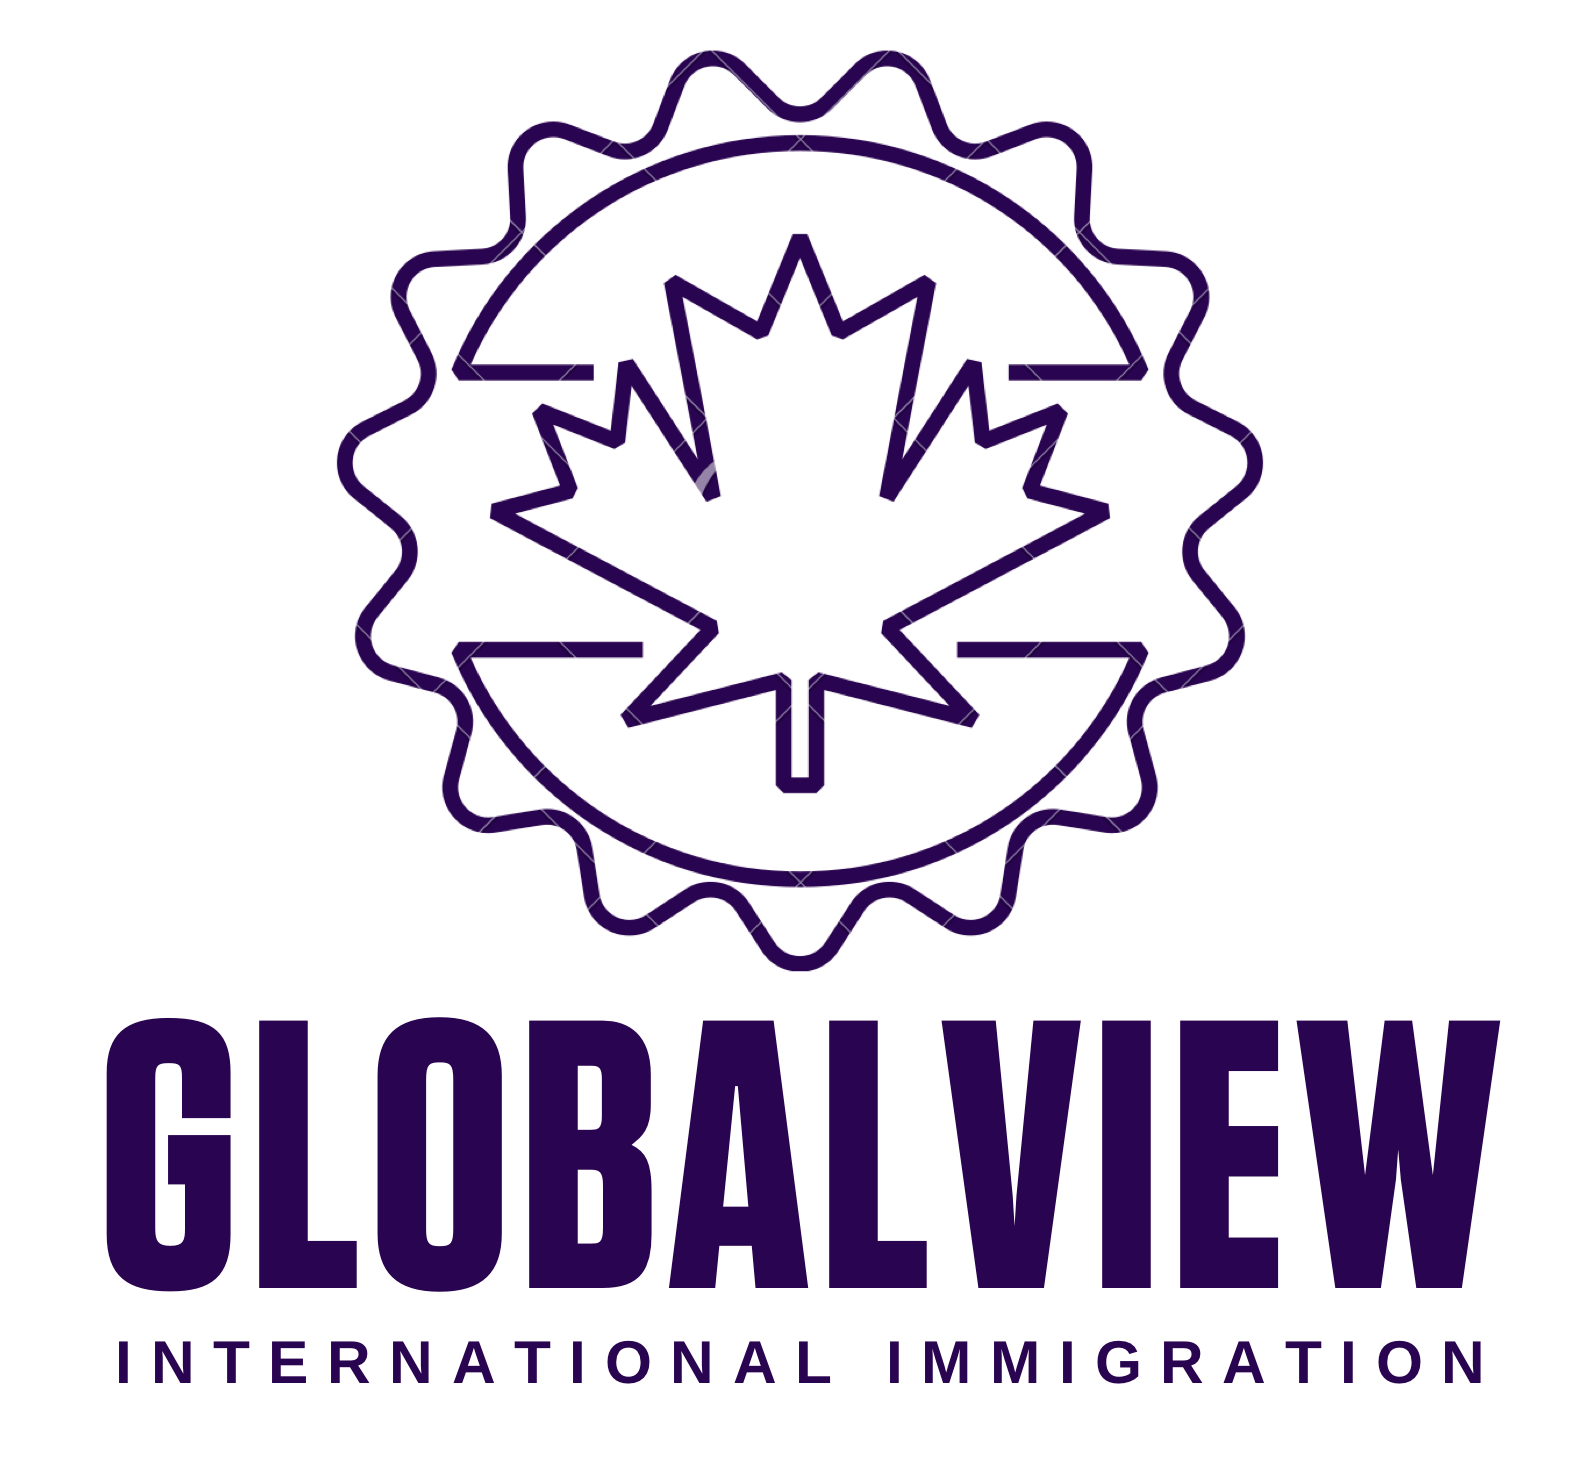 Canada Globalview International Immigration